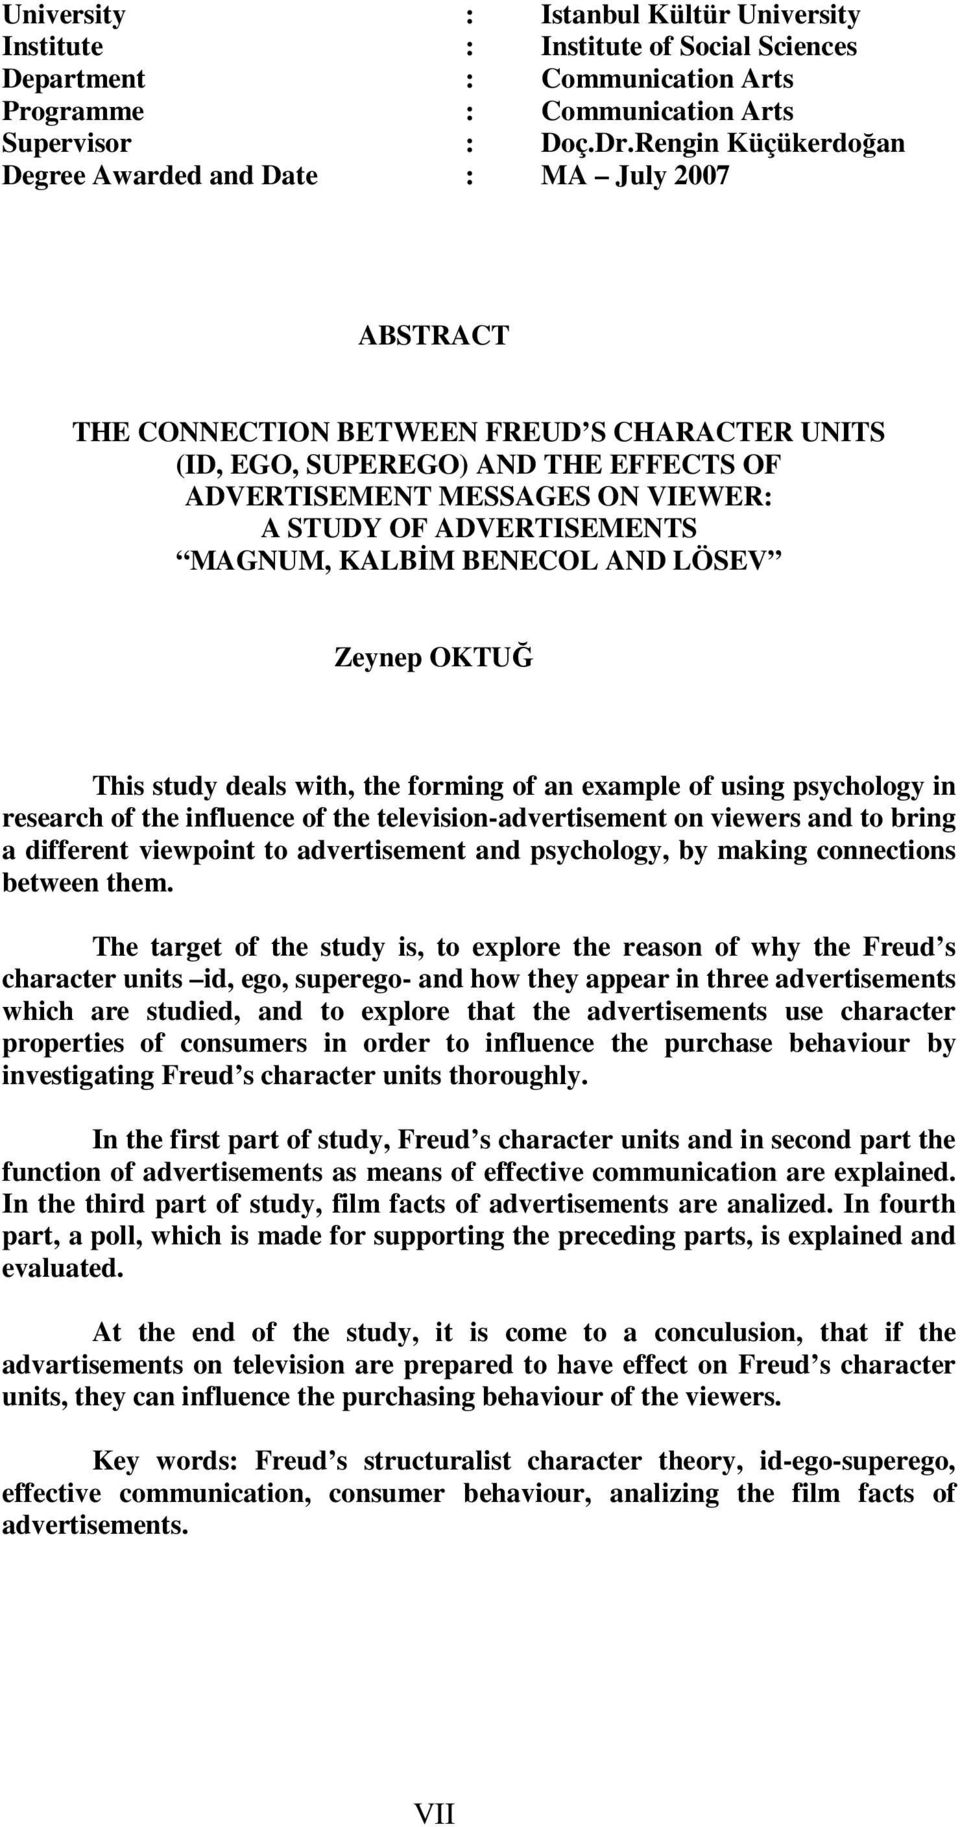 ADVERTISEMENTS MAGNUM, KALBİM BENECOL AND LÖSEV Zeynep OKTUĞ This study deals with, the forming of an example of using psychology in research of the influence of the television-advertisement on